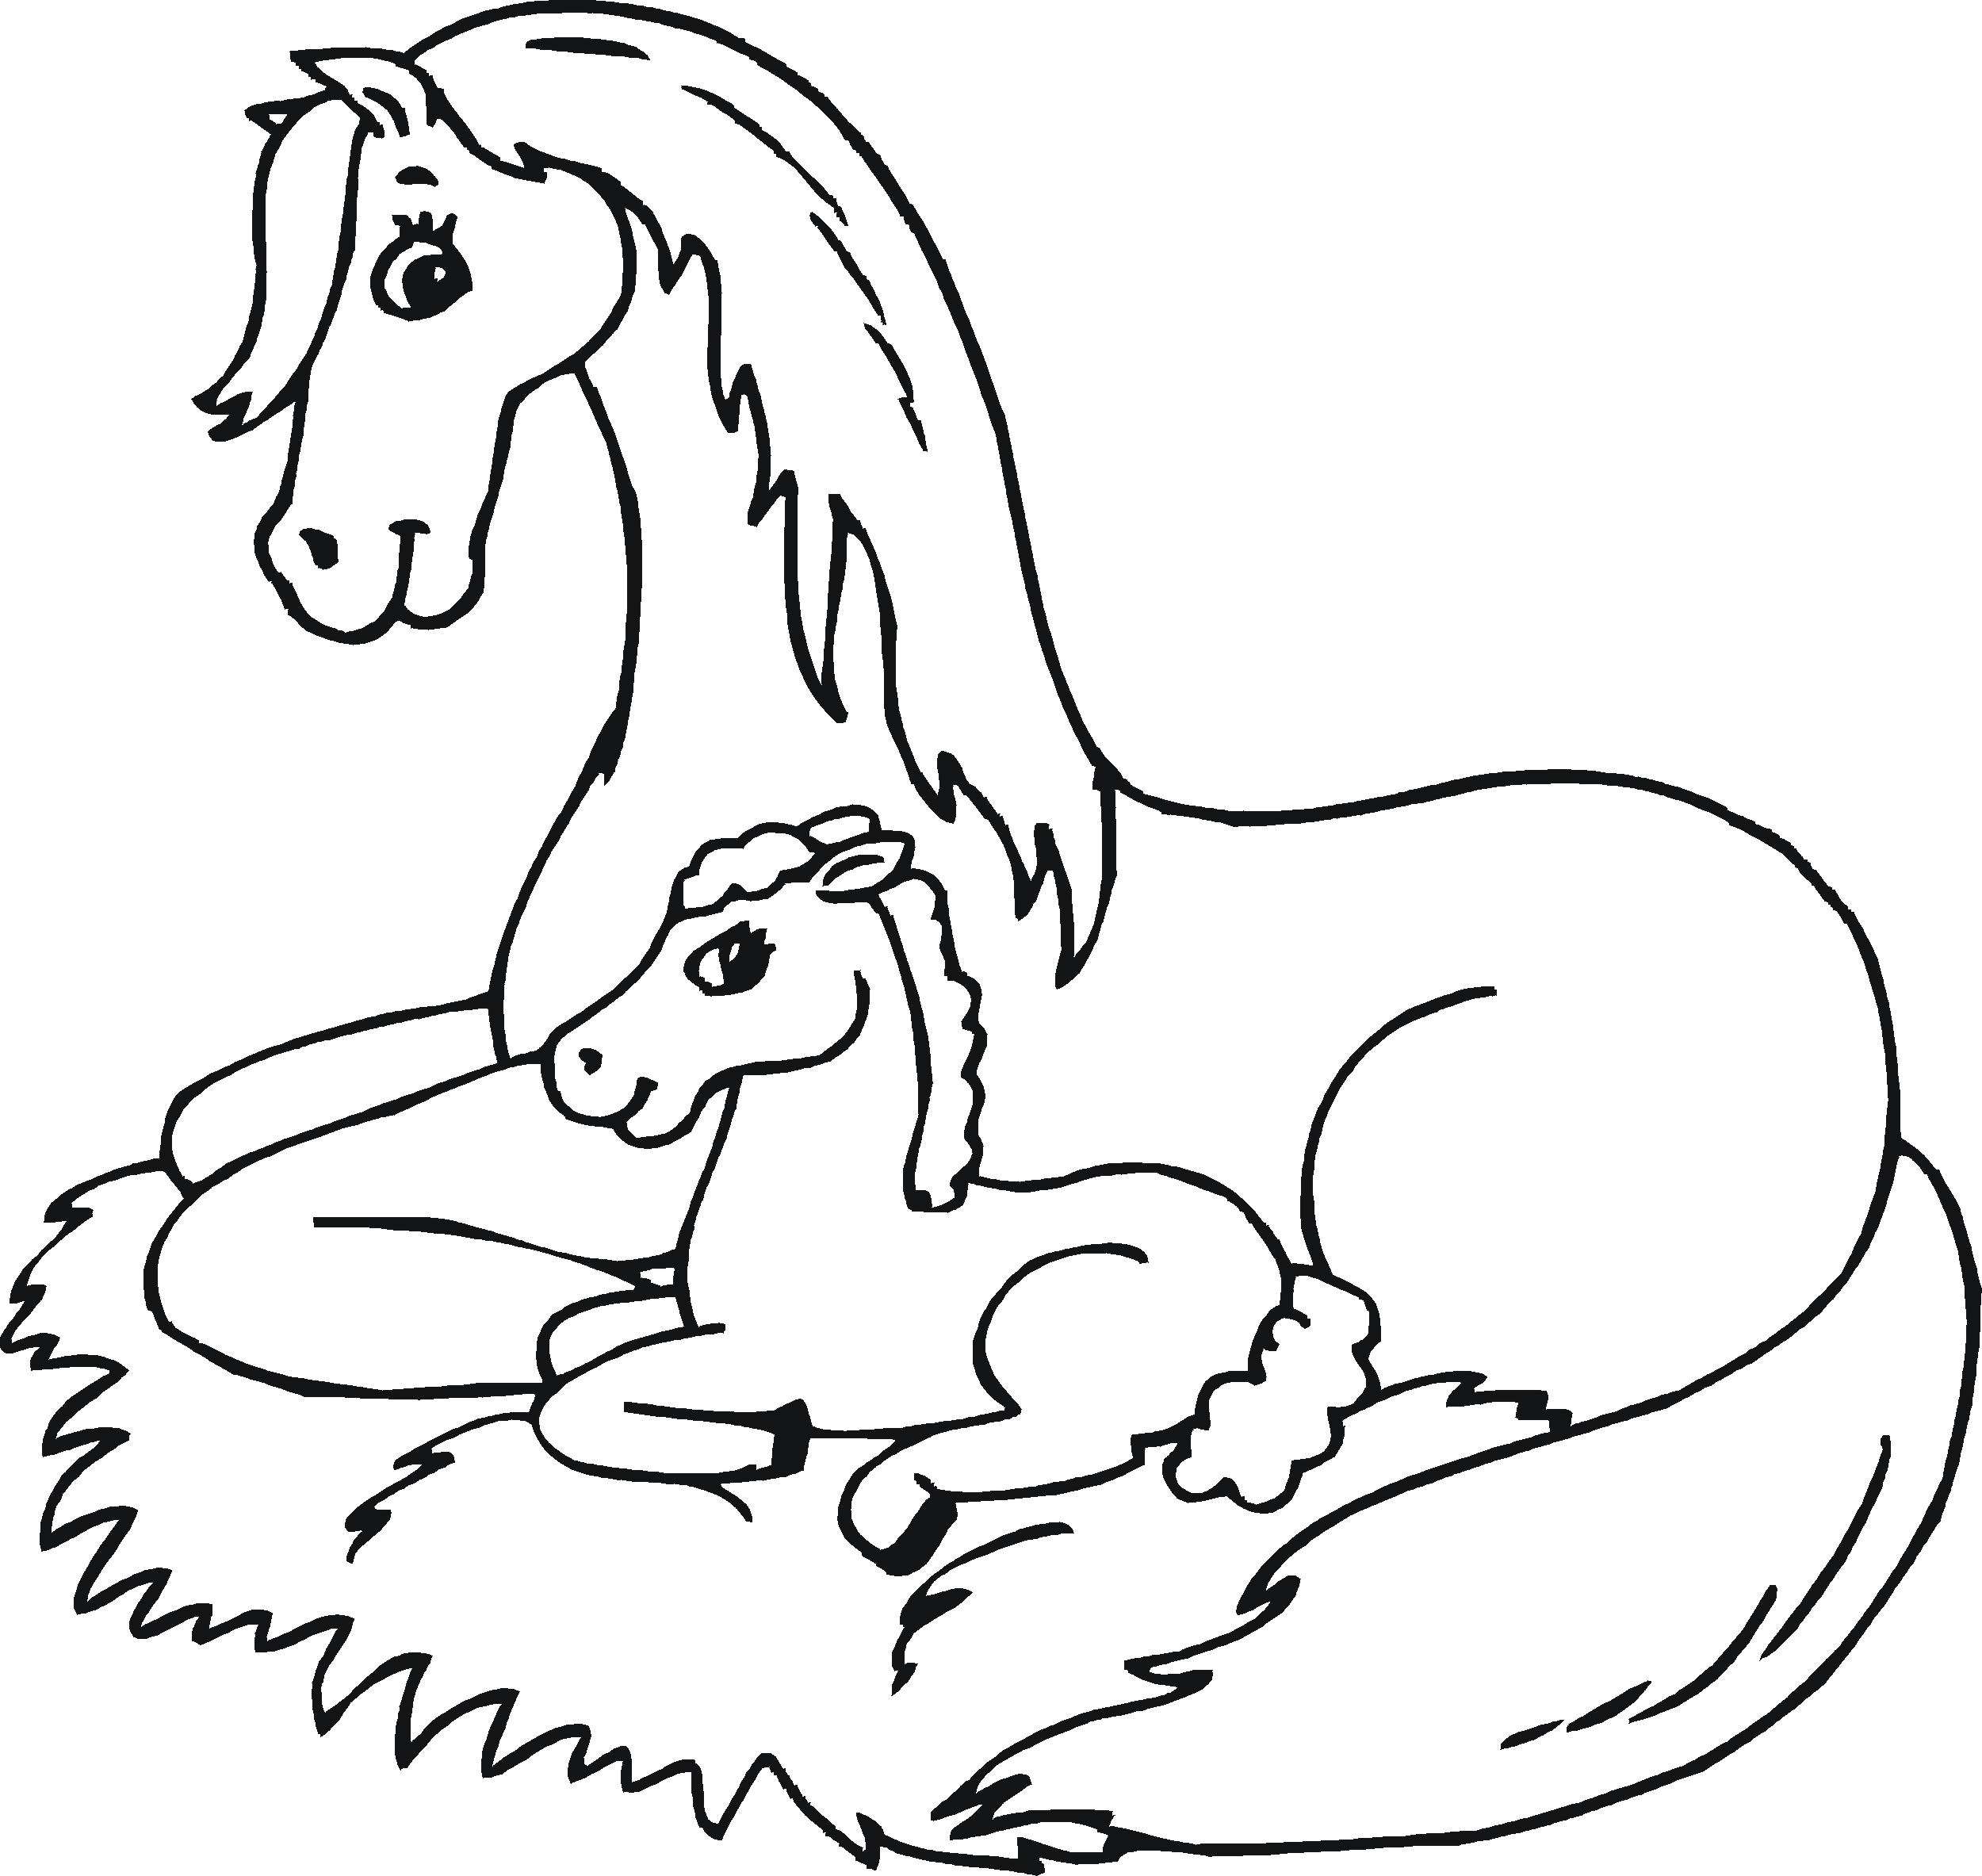 coloring page of horse fun horse coloring pages for your kids printable coloring horse of page 1 1